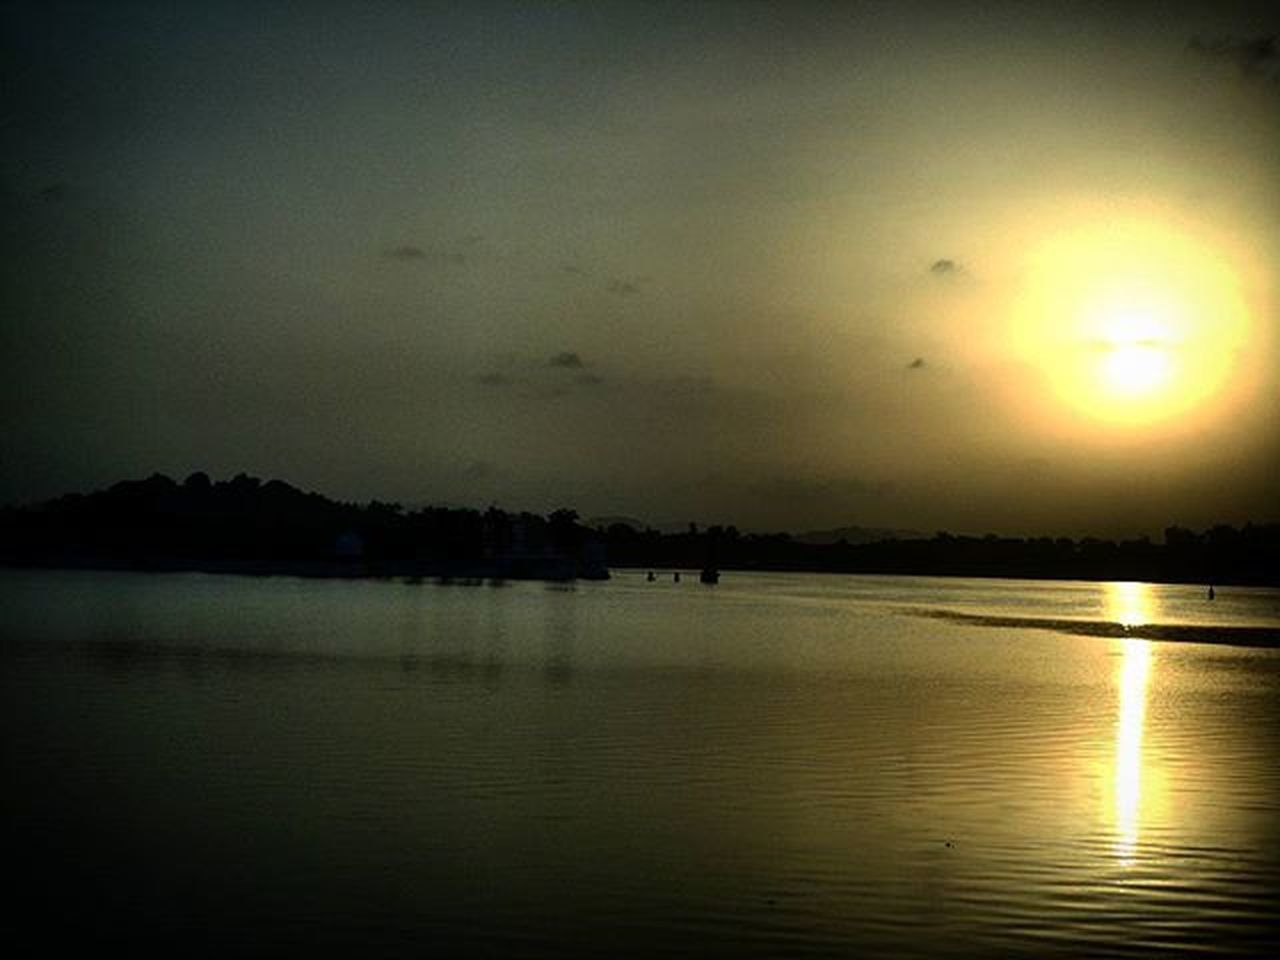 MerryChristmas Toall Looking at the Sun rising is my Favourite Timepass Sun_cic Sunrose Morningclicks @sunriseporn @sunrise_and_sunsets @sunrise_over_sea @exclusive.sunset @sunrise_sunset_heaven Instauploads Morningdiaries PixelAthon MorningCliche Mysnap Reflection_in_the_lake NatureStrokes MrngTo_all